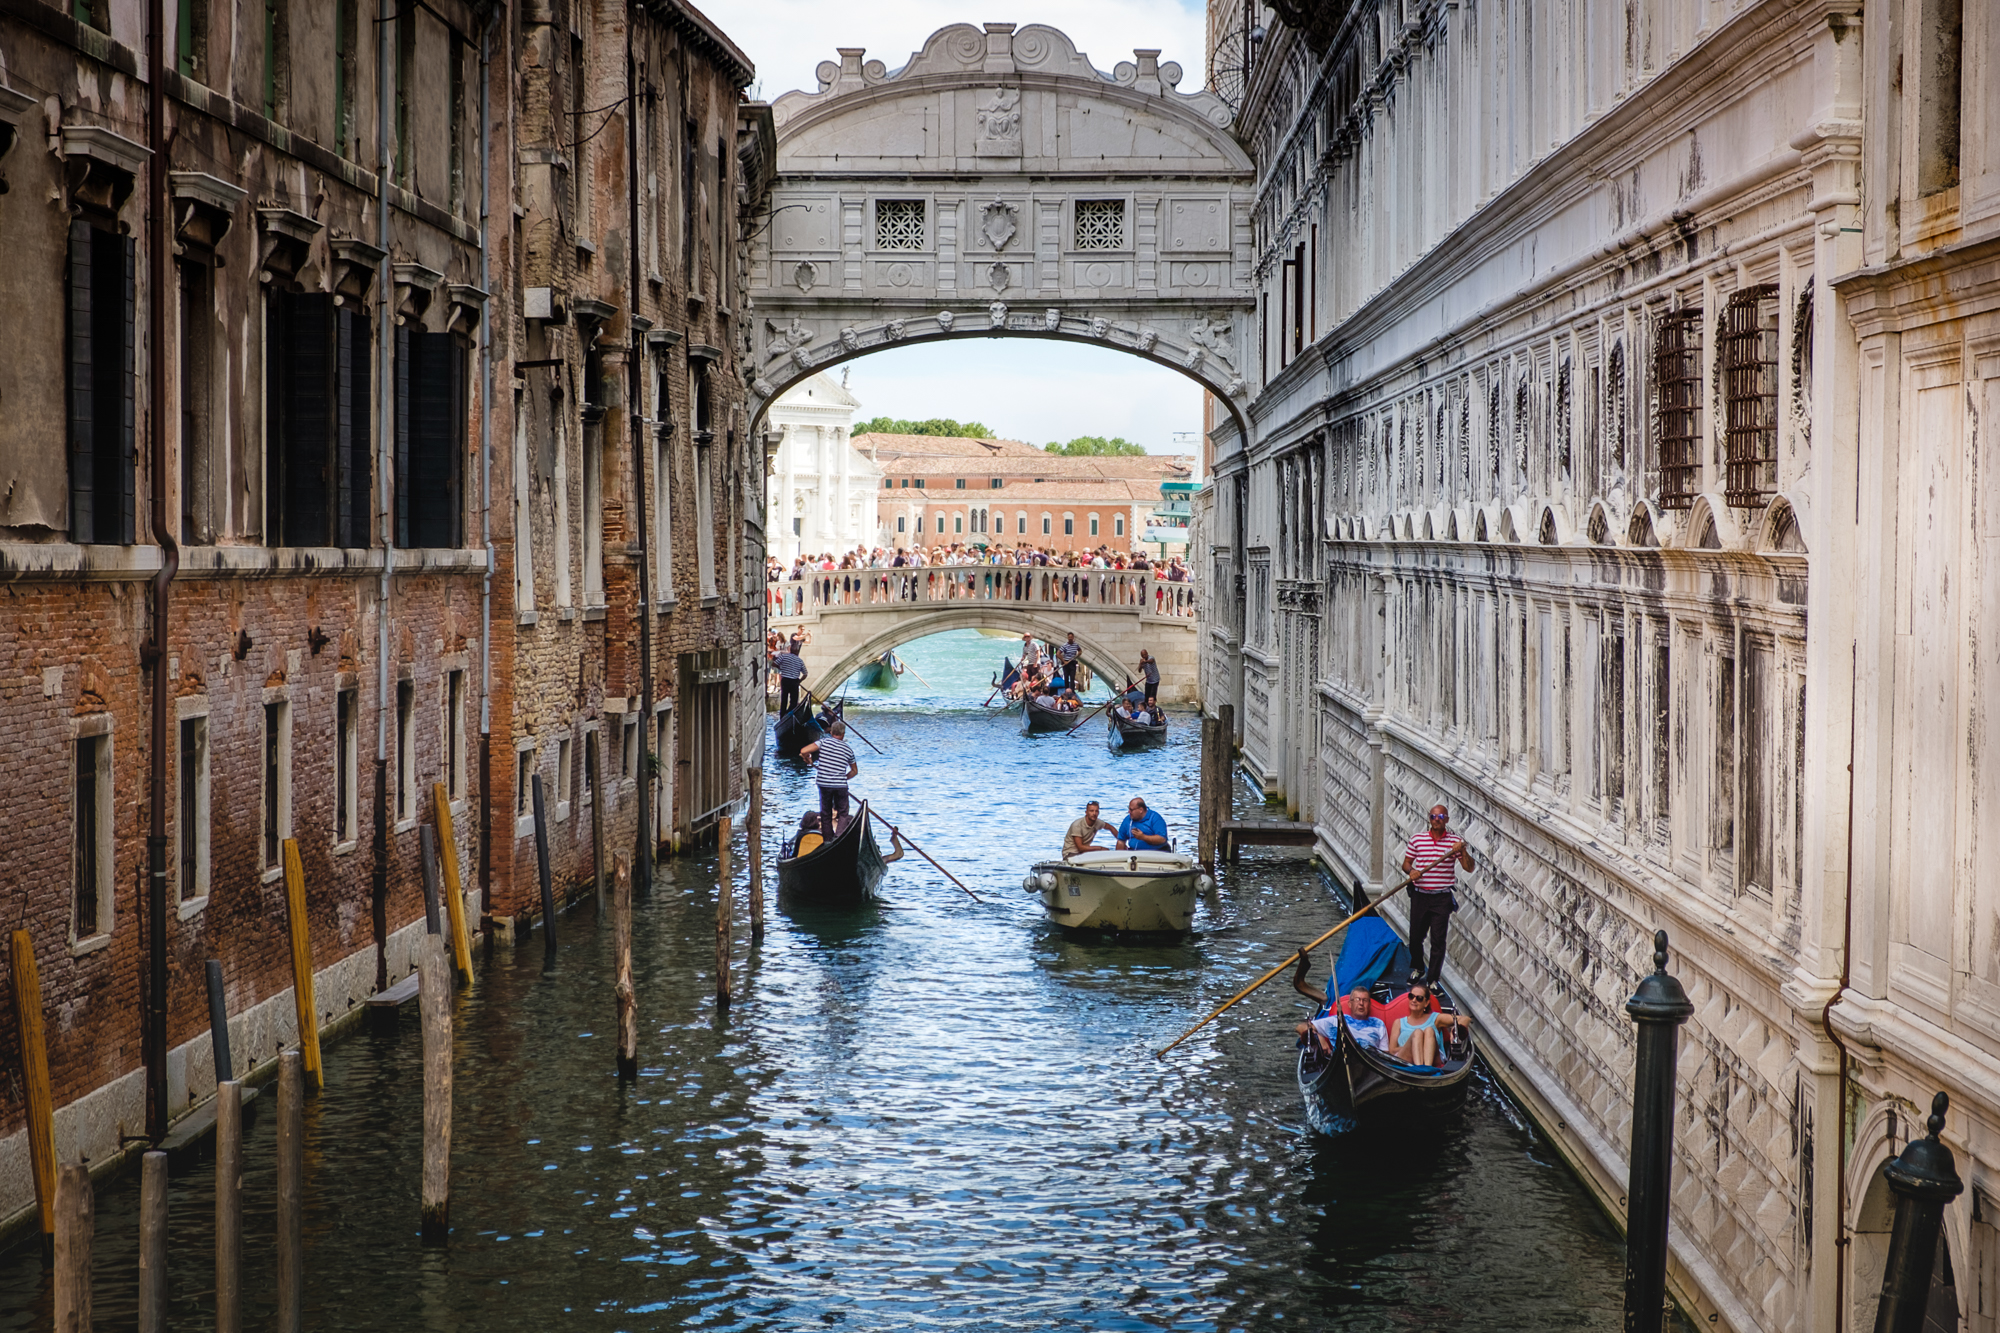 Photo of the Bridge of Sighs in Venice taken by Trevor Sherwin